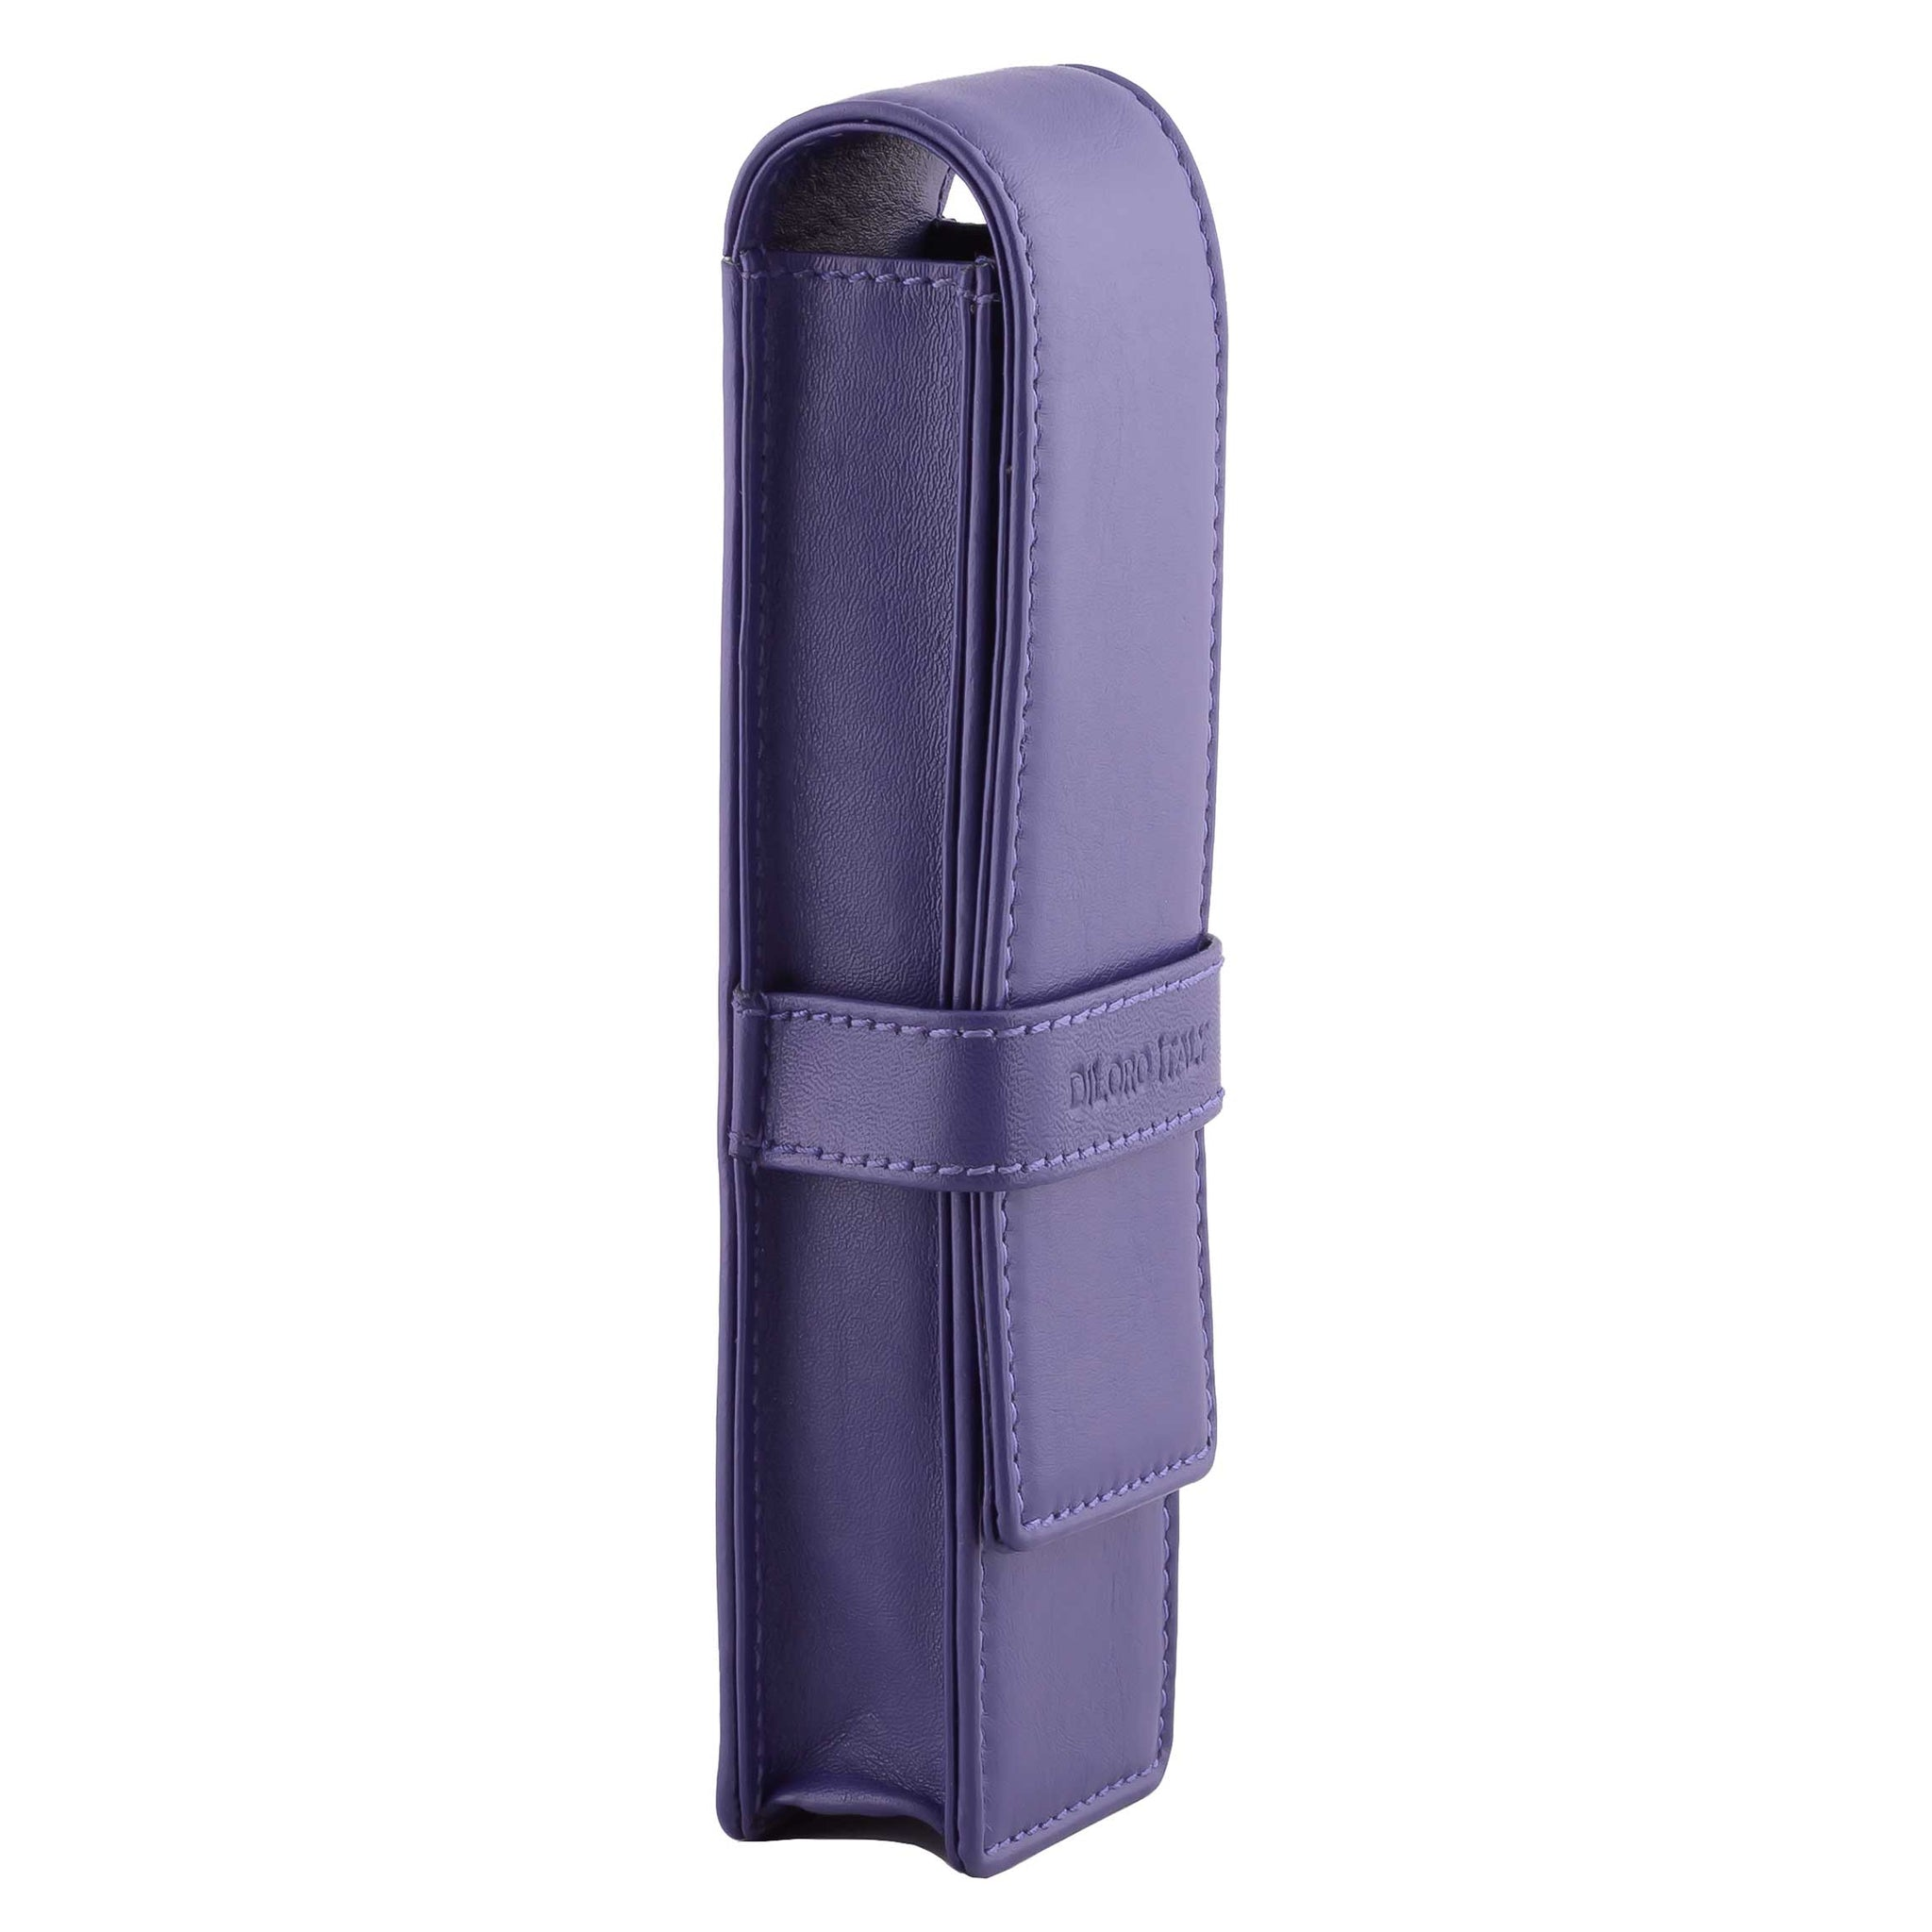 DiLoro Double Pen Case Holder in Top Quality, Full Grain Nappa Leather - Violet (Purple)